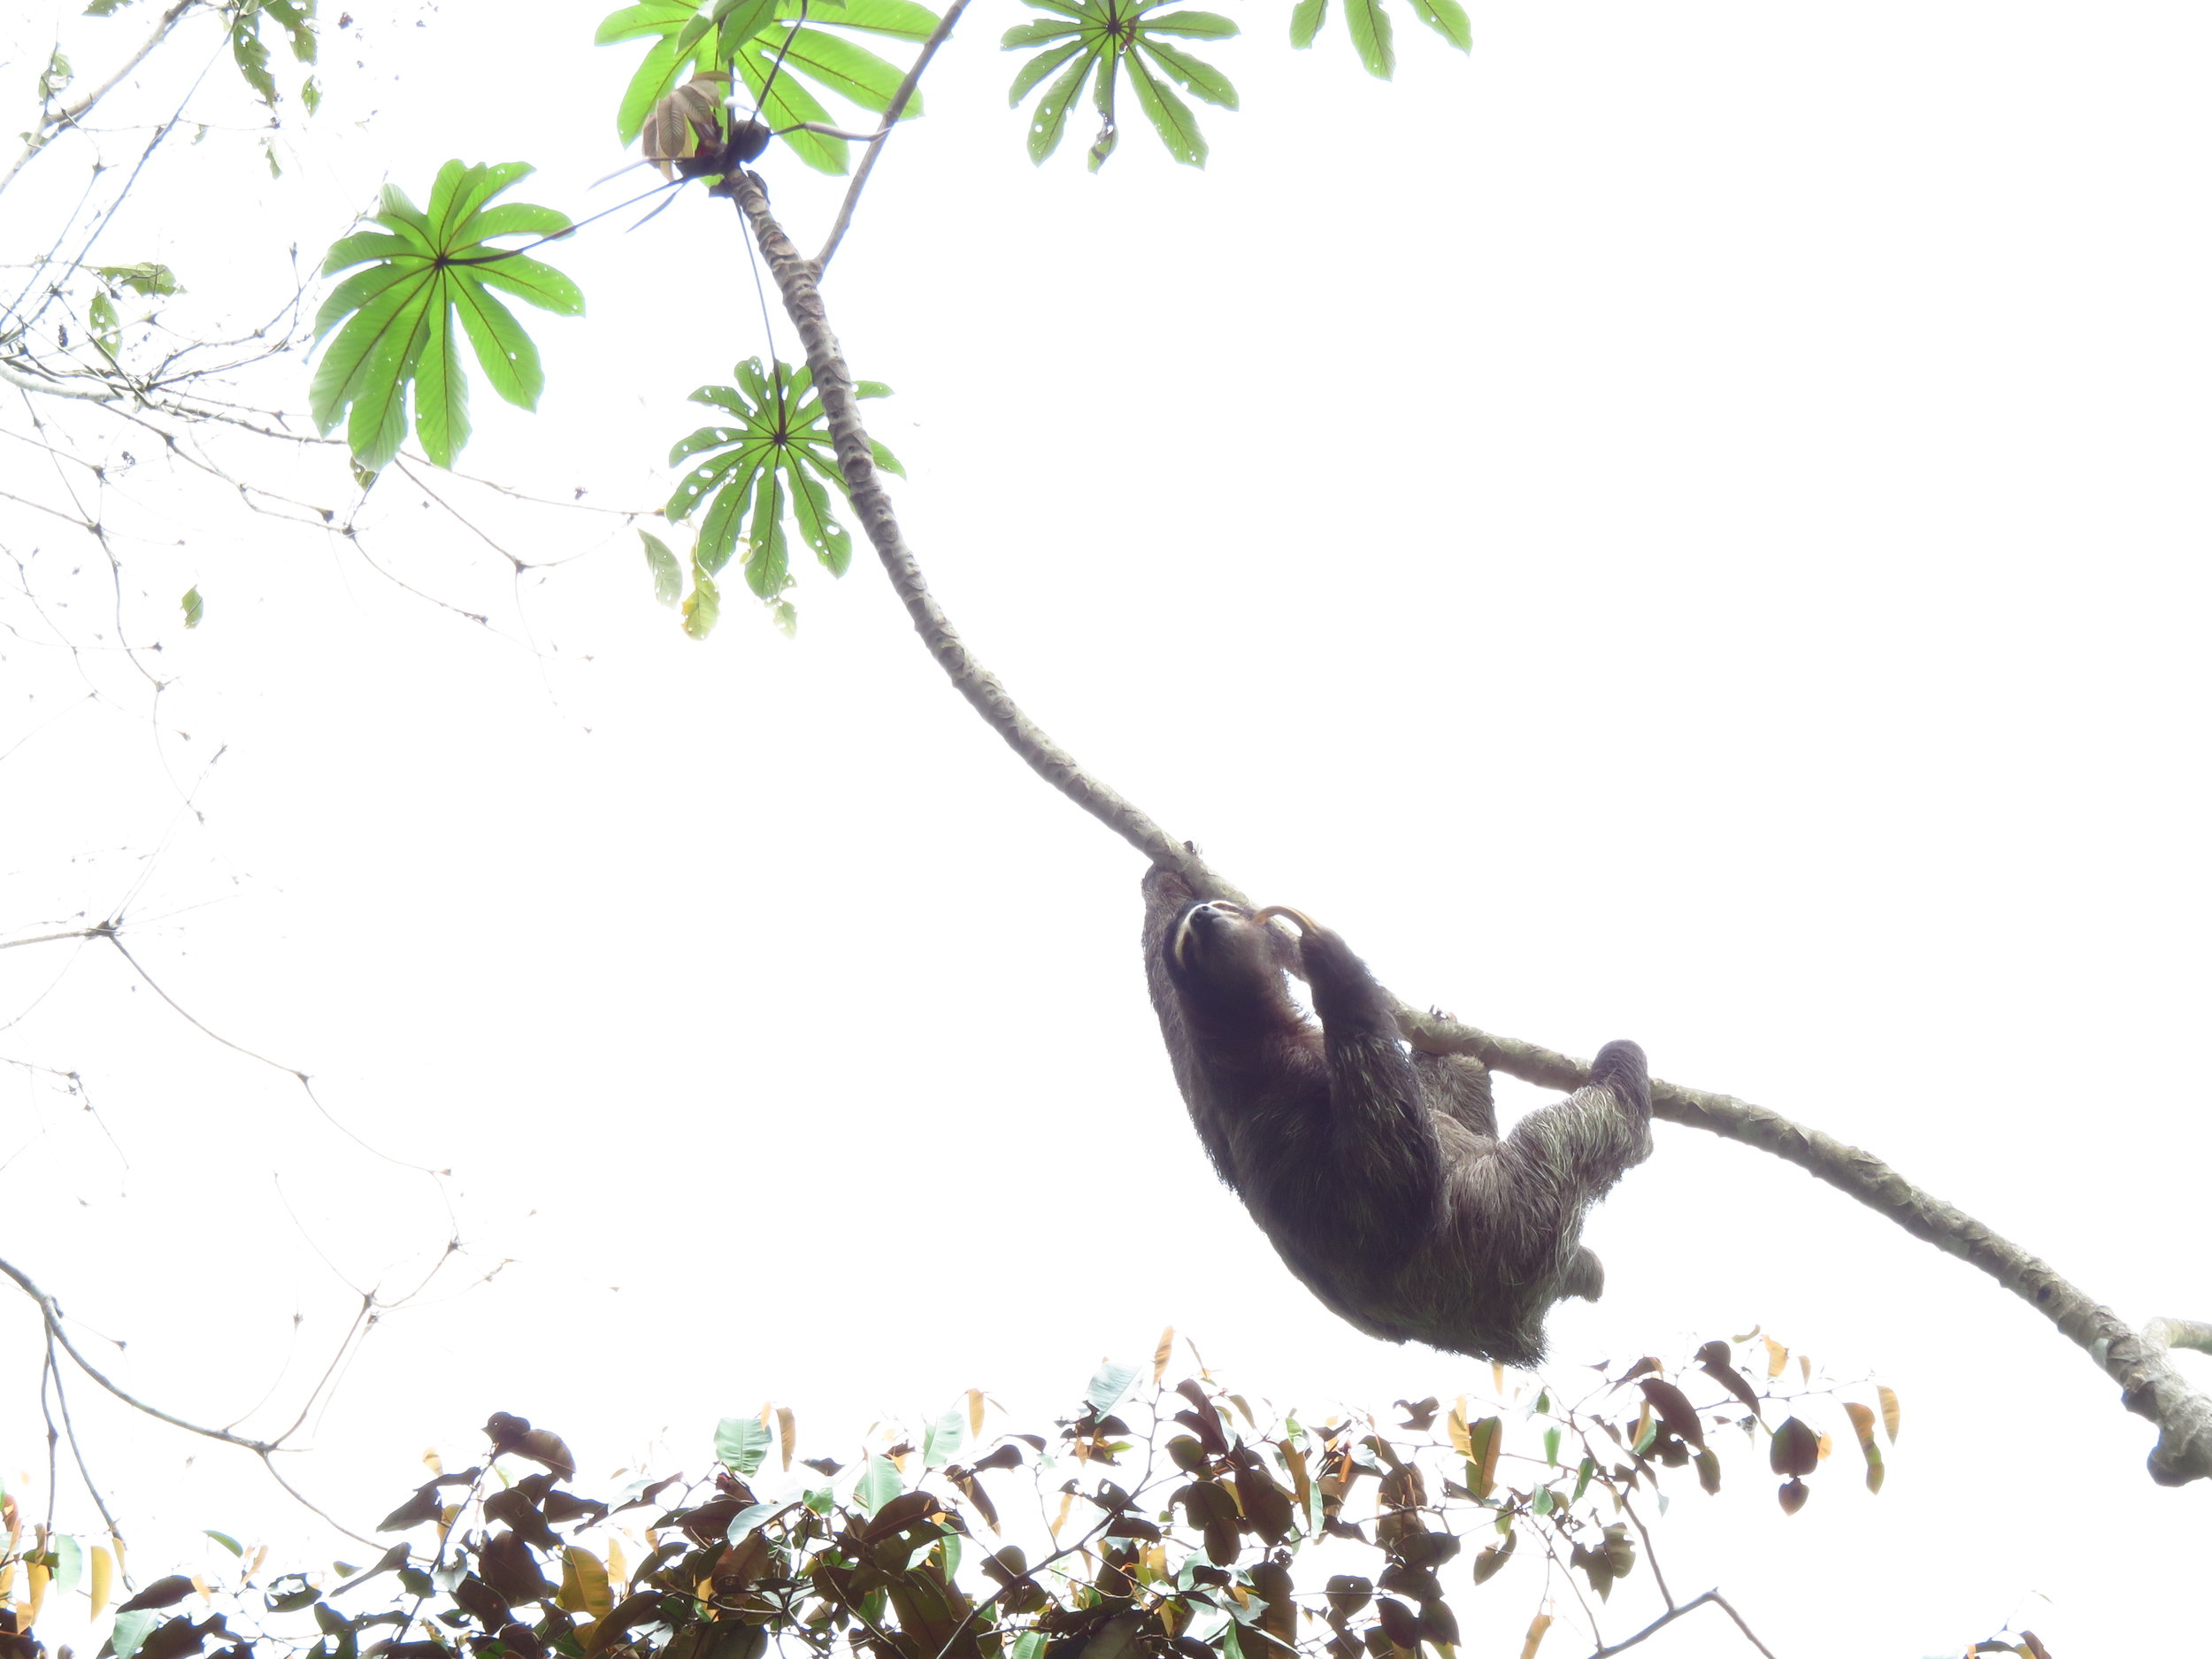 A three-toed sloth attempting to reach the Cecropia leaves.